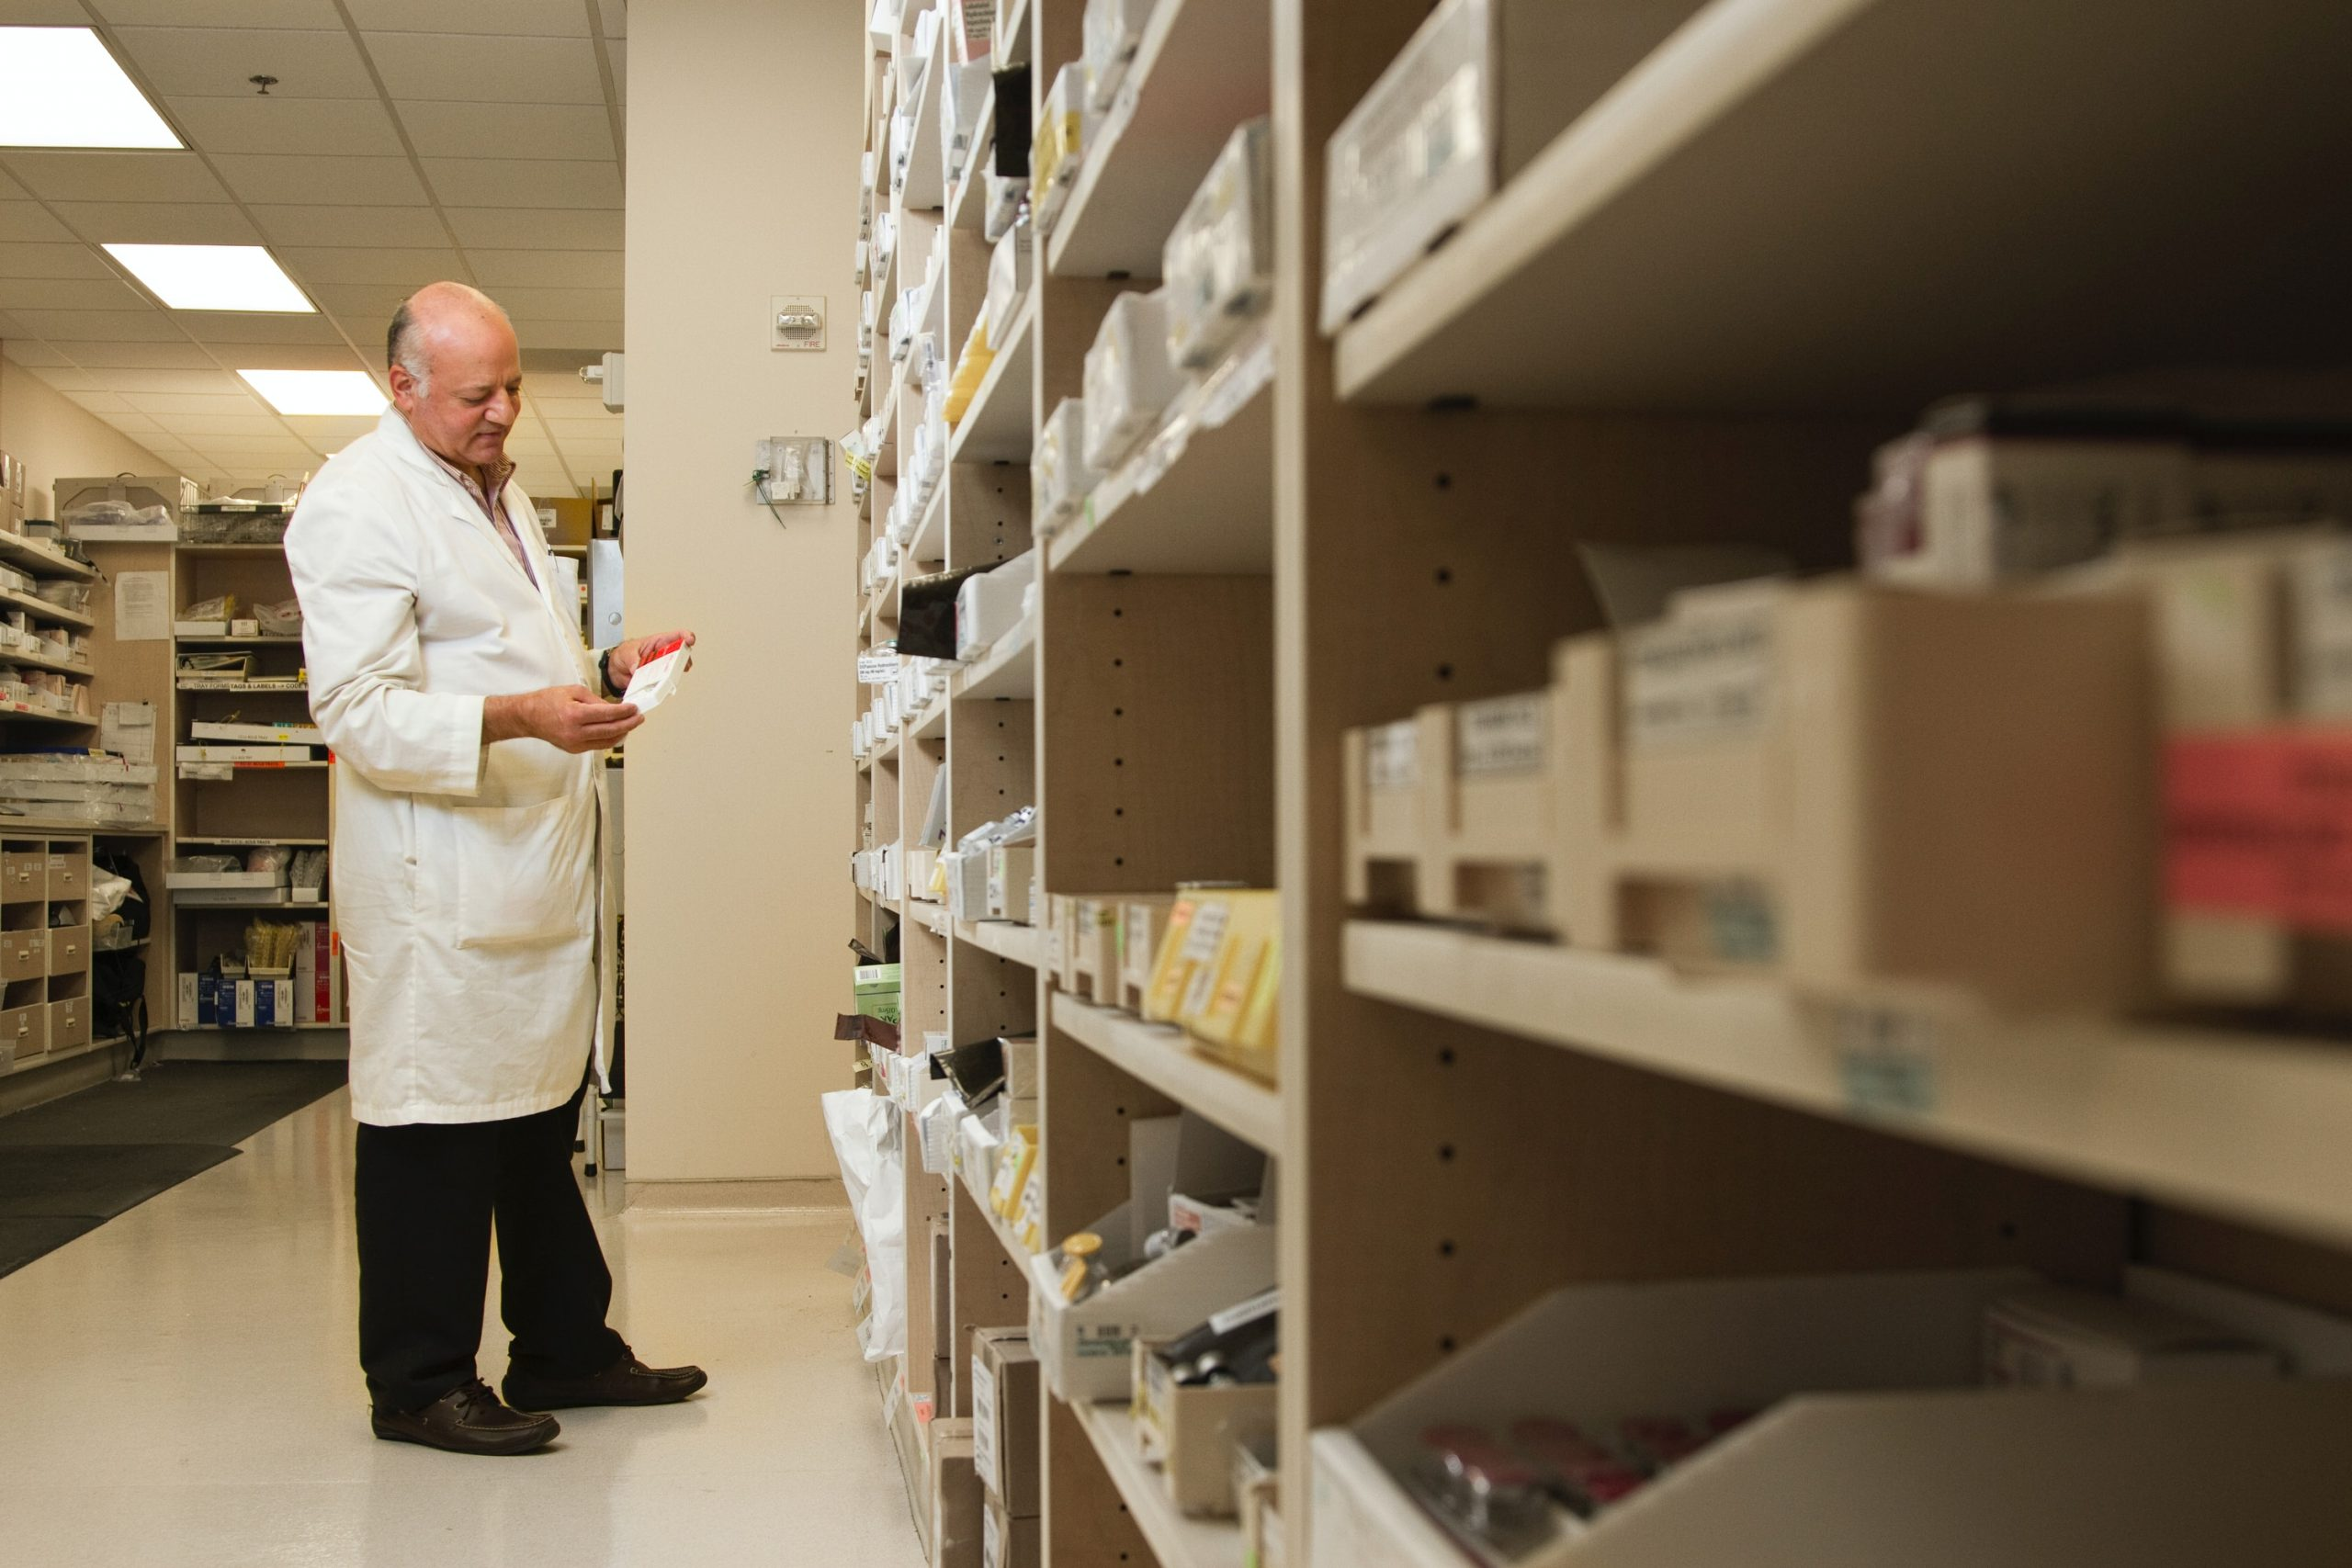 A male pharmacist is examining a drug from a the pharmacy inventory.